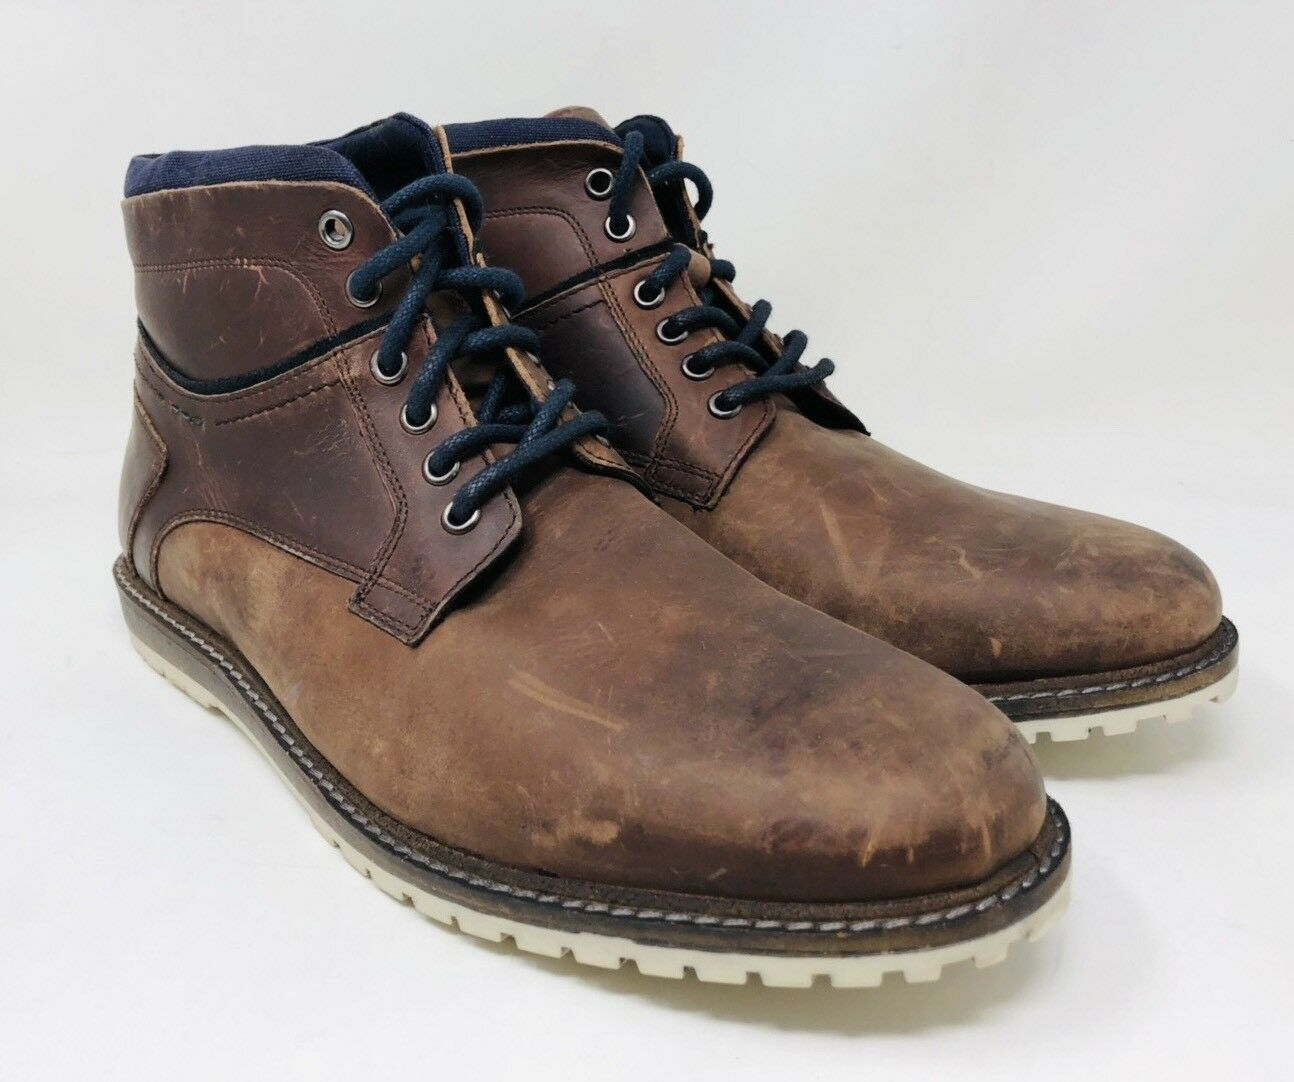 Bar III Men's Chance Plain-Toe Ankle Boots Size 11 Brown Leather